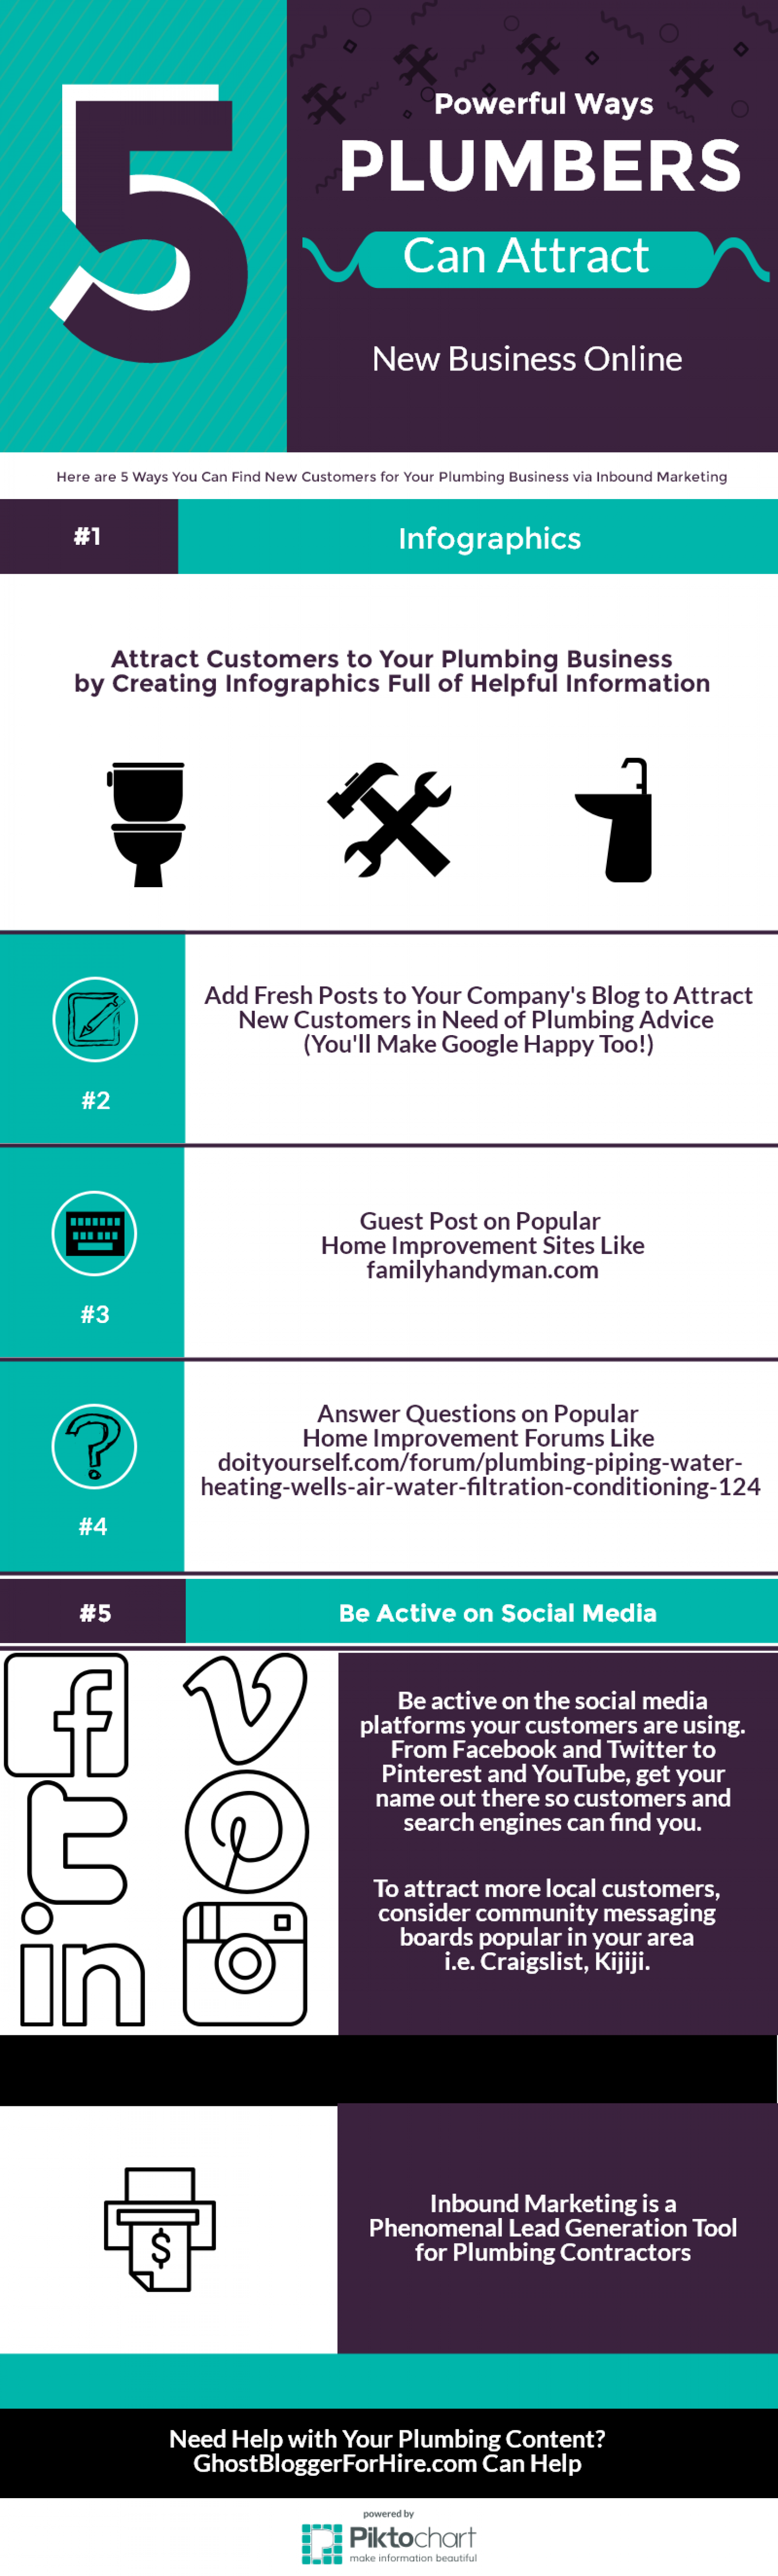 5 Powerful Ways Plumbers Can Attract New Business Online Infographic